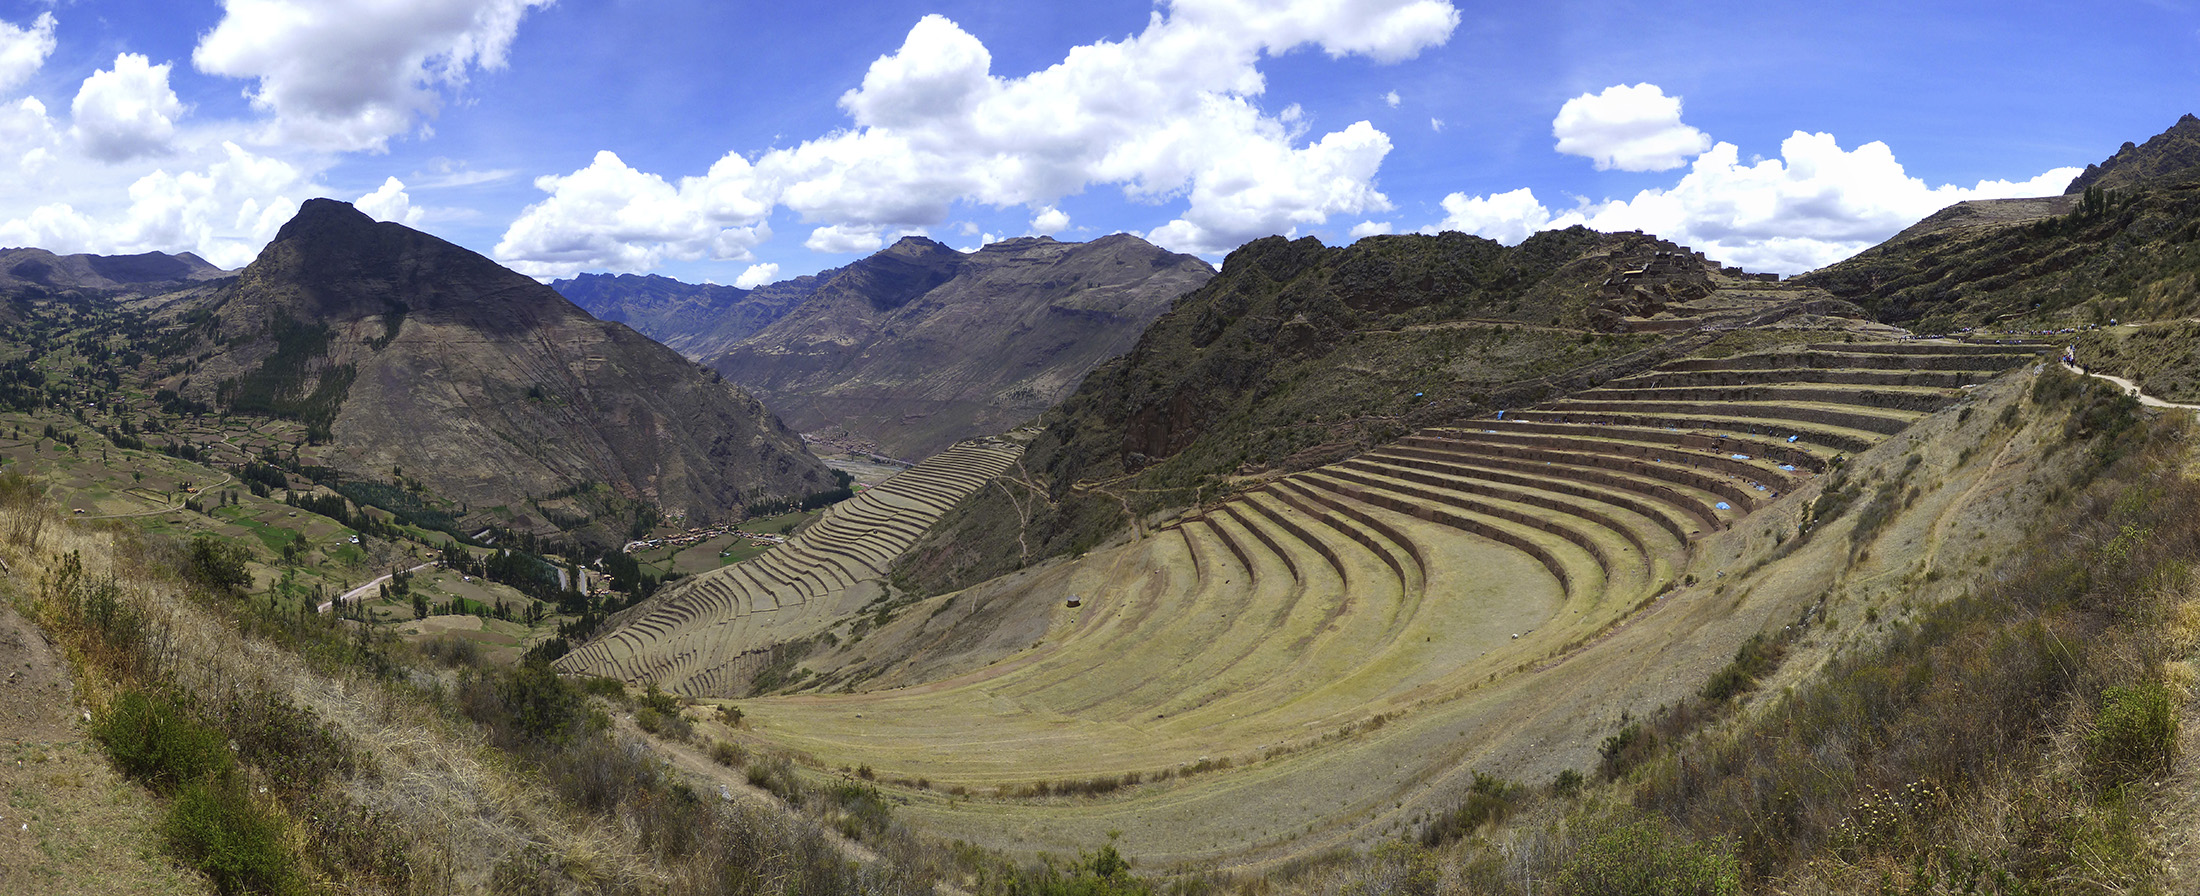 Terraces of the Pisac Ruins